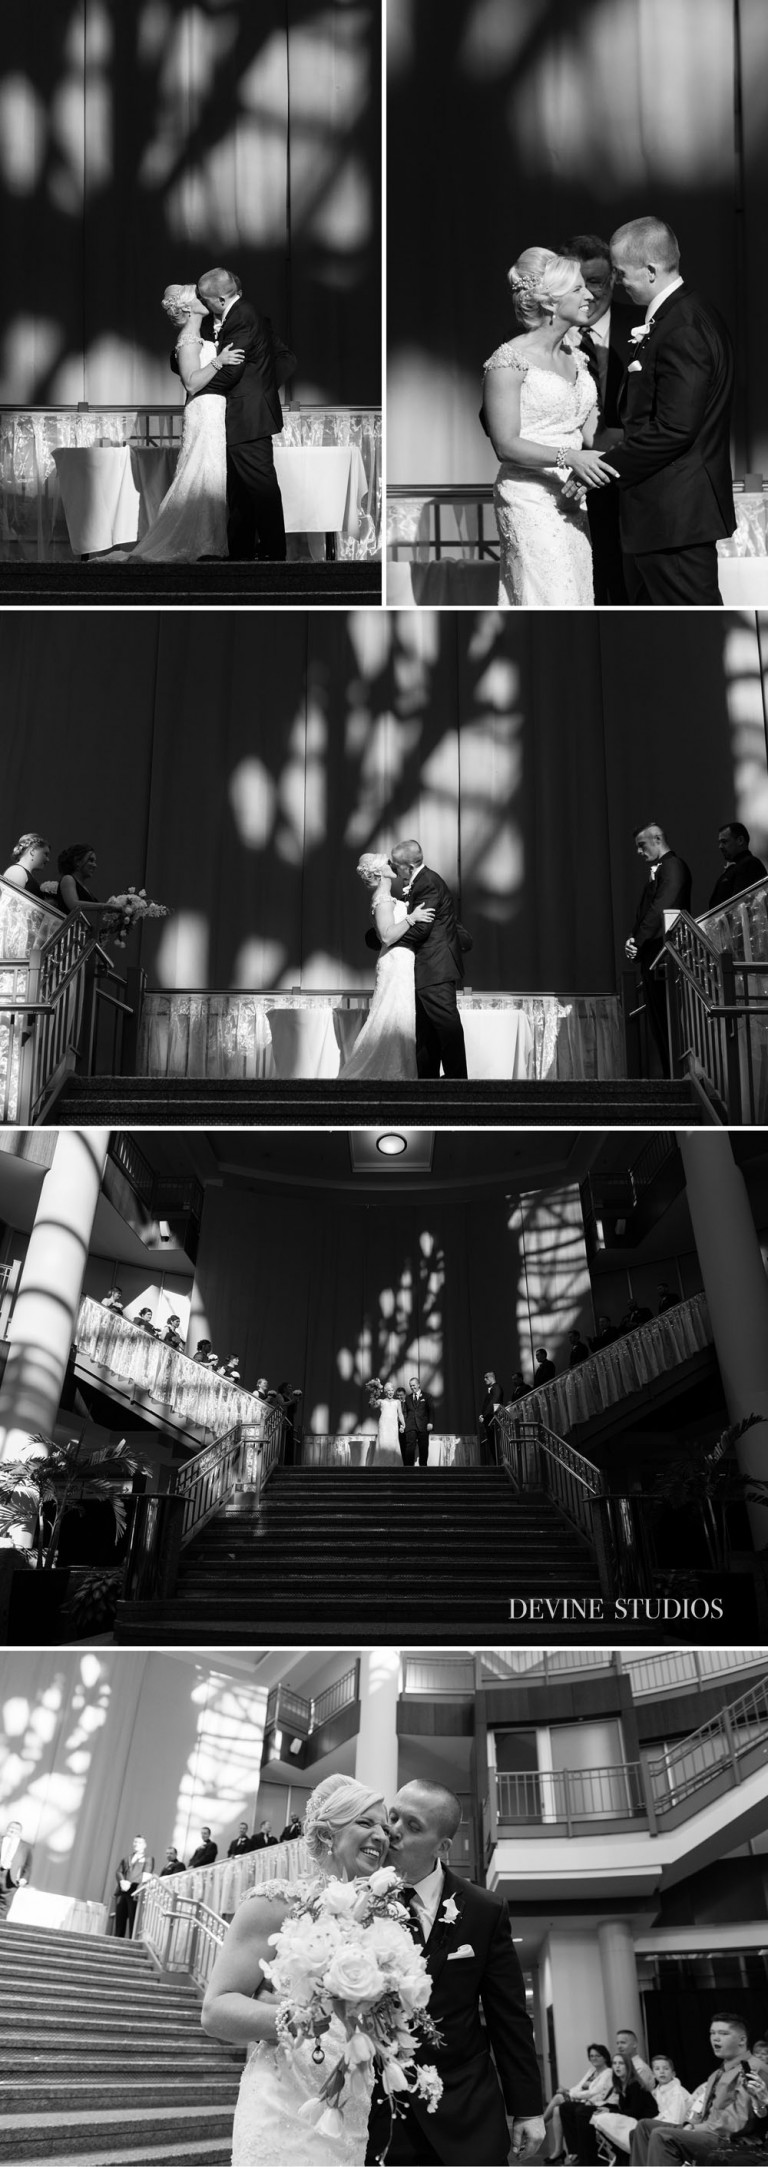 http://devinestudios.com/boudoir/wp-content/uploads/2016/05/10-839-post/Kansas-City-Wedding-Photography-Town-Pavilion-photojournalist-photographers12-768x2167.jpg